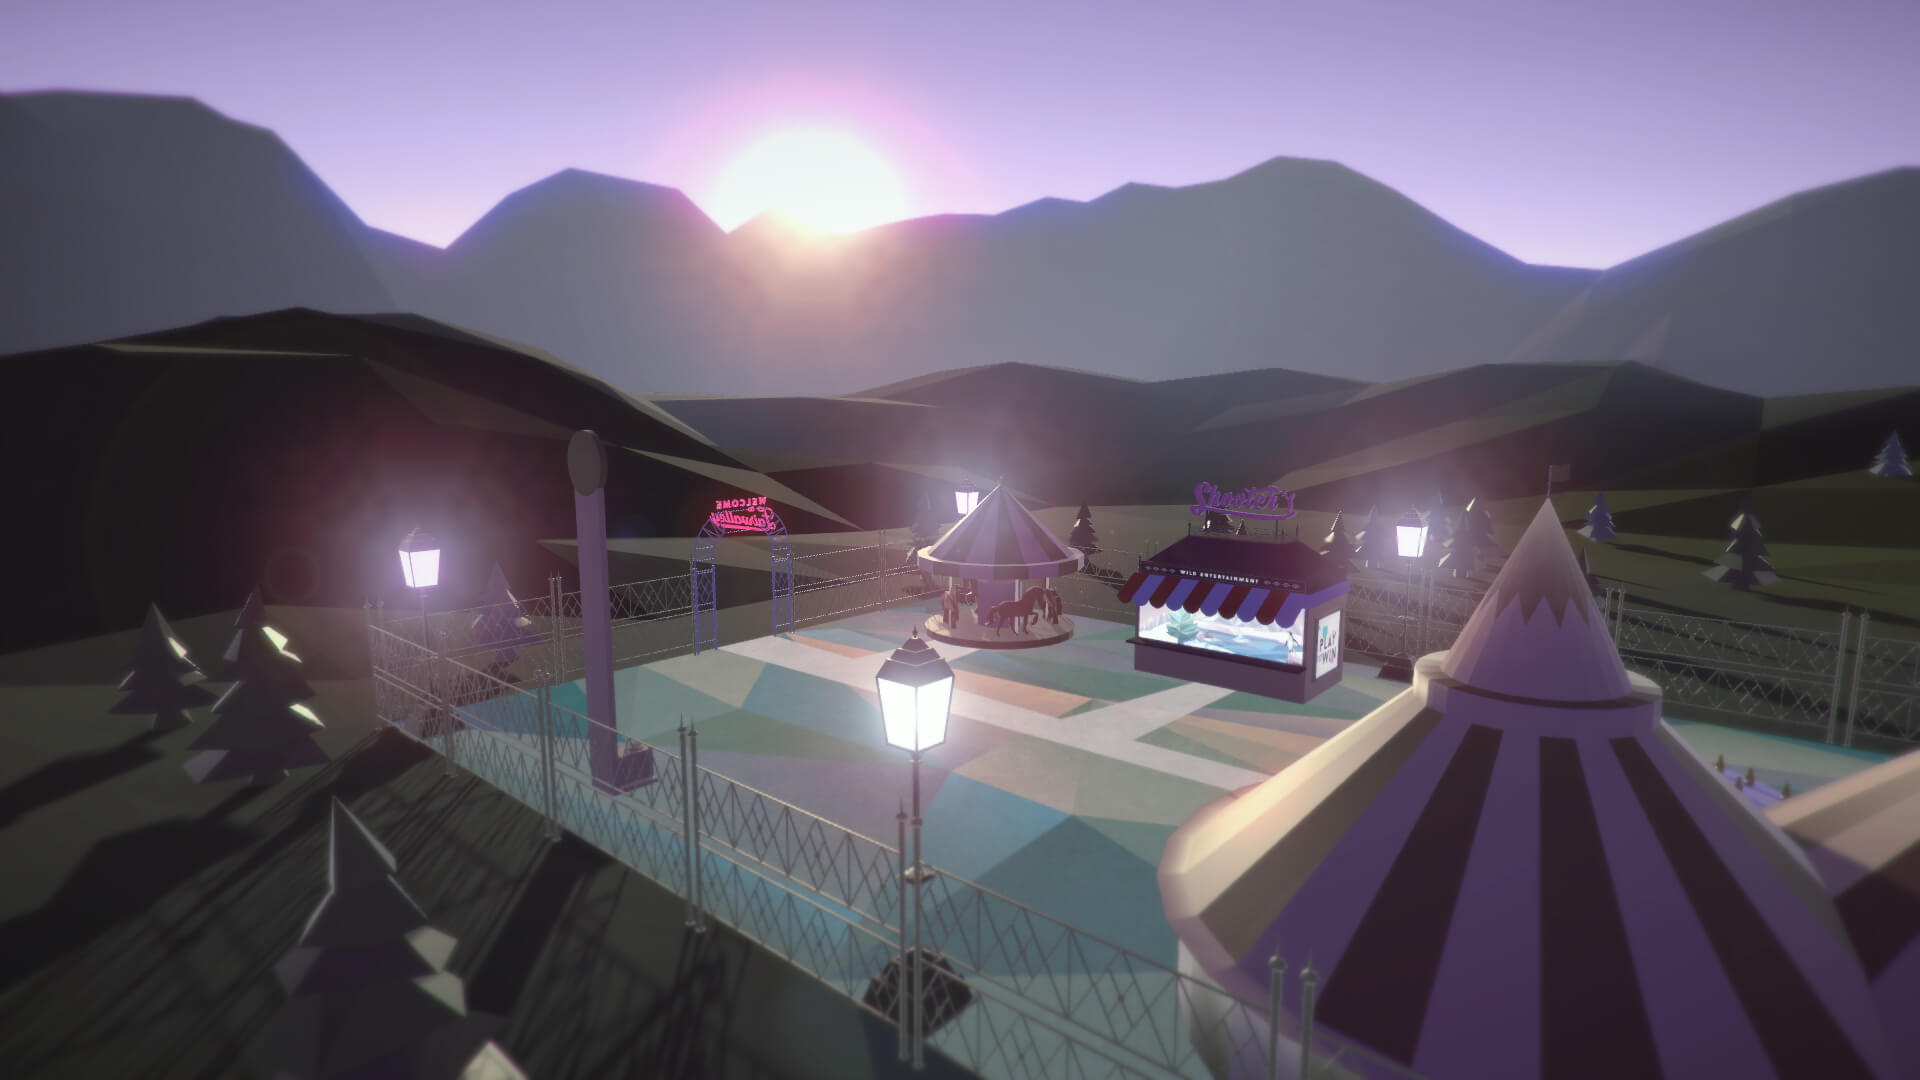 001_Fairvalley_Top_view